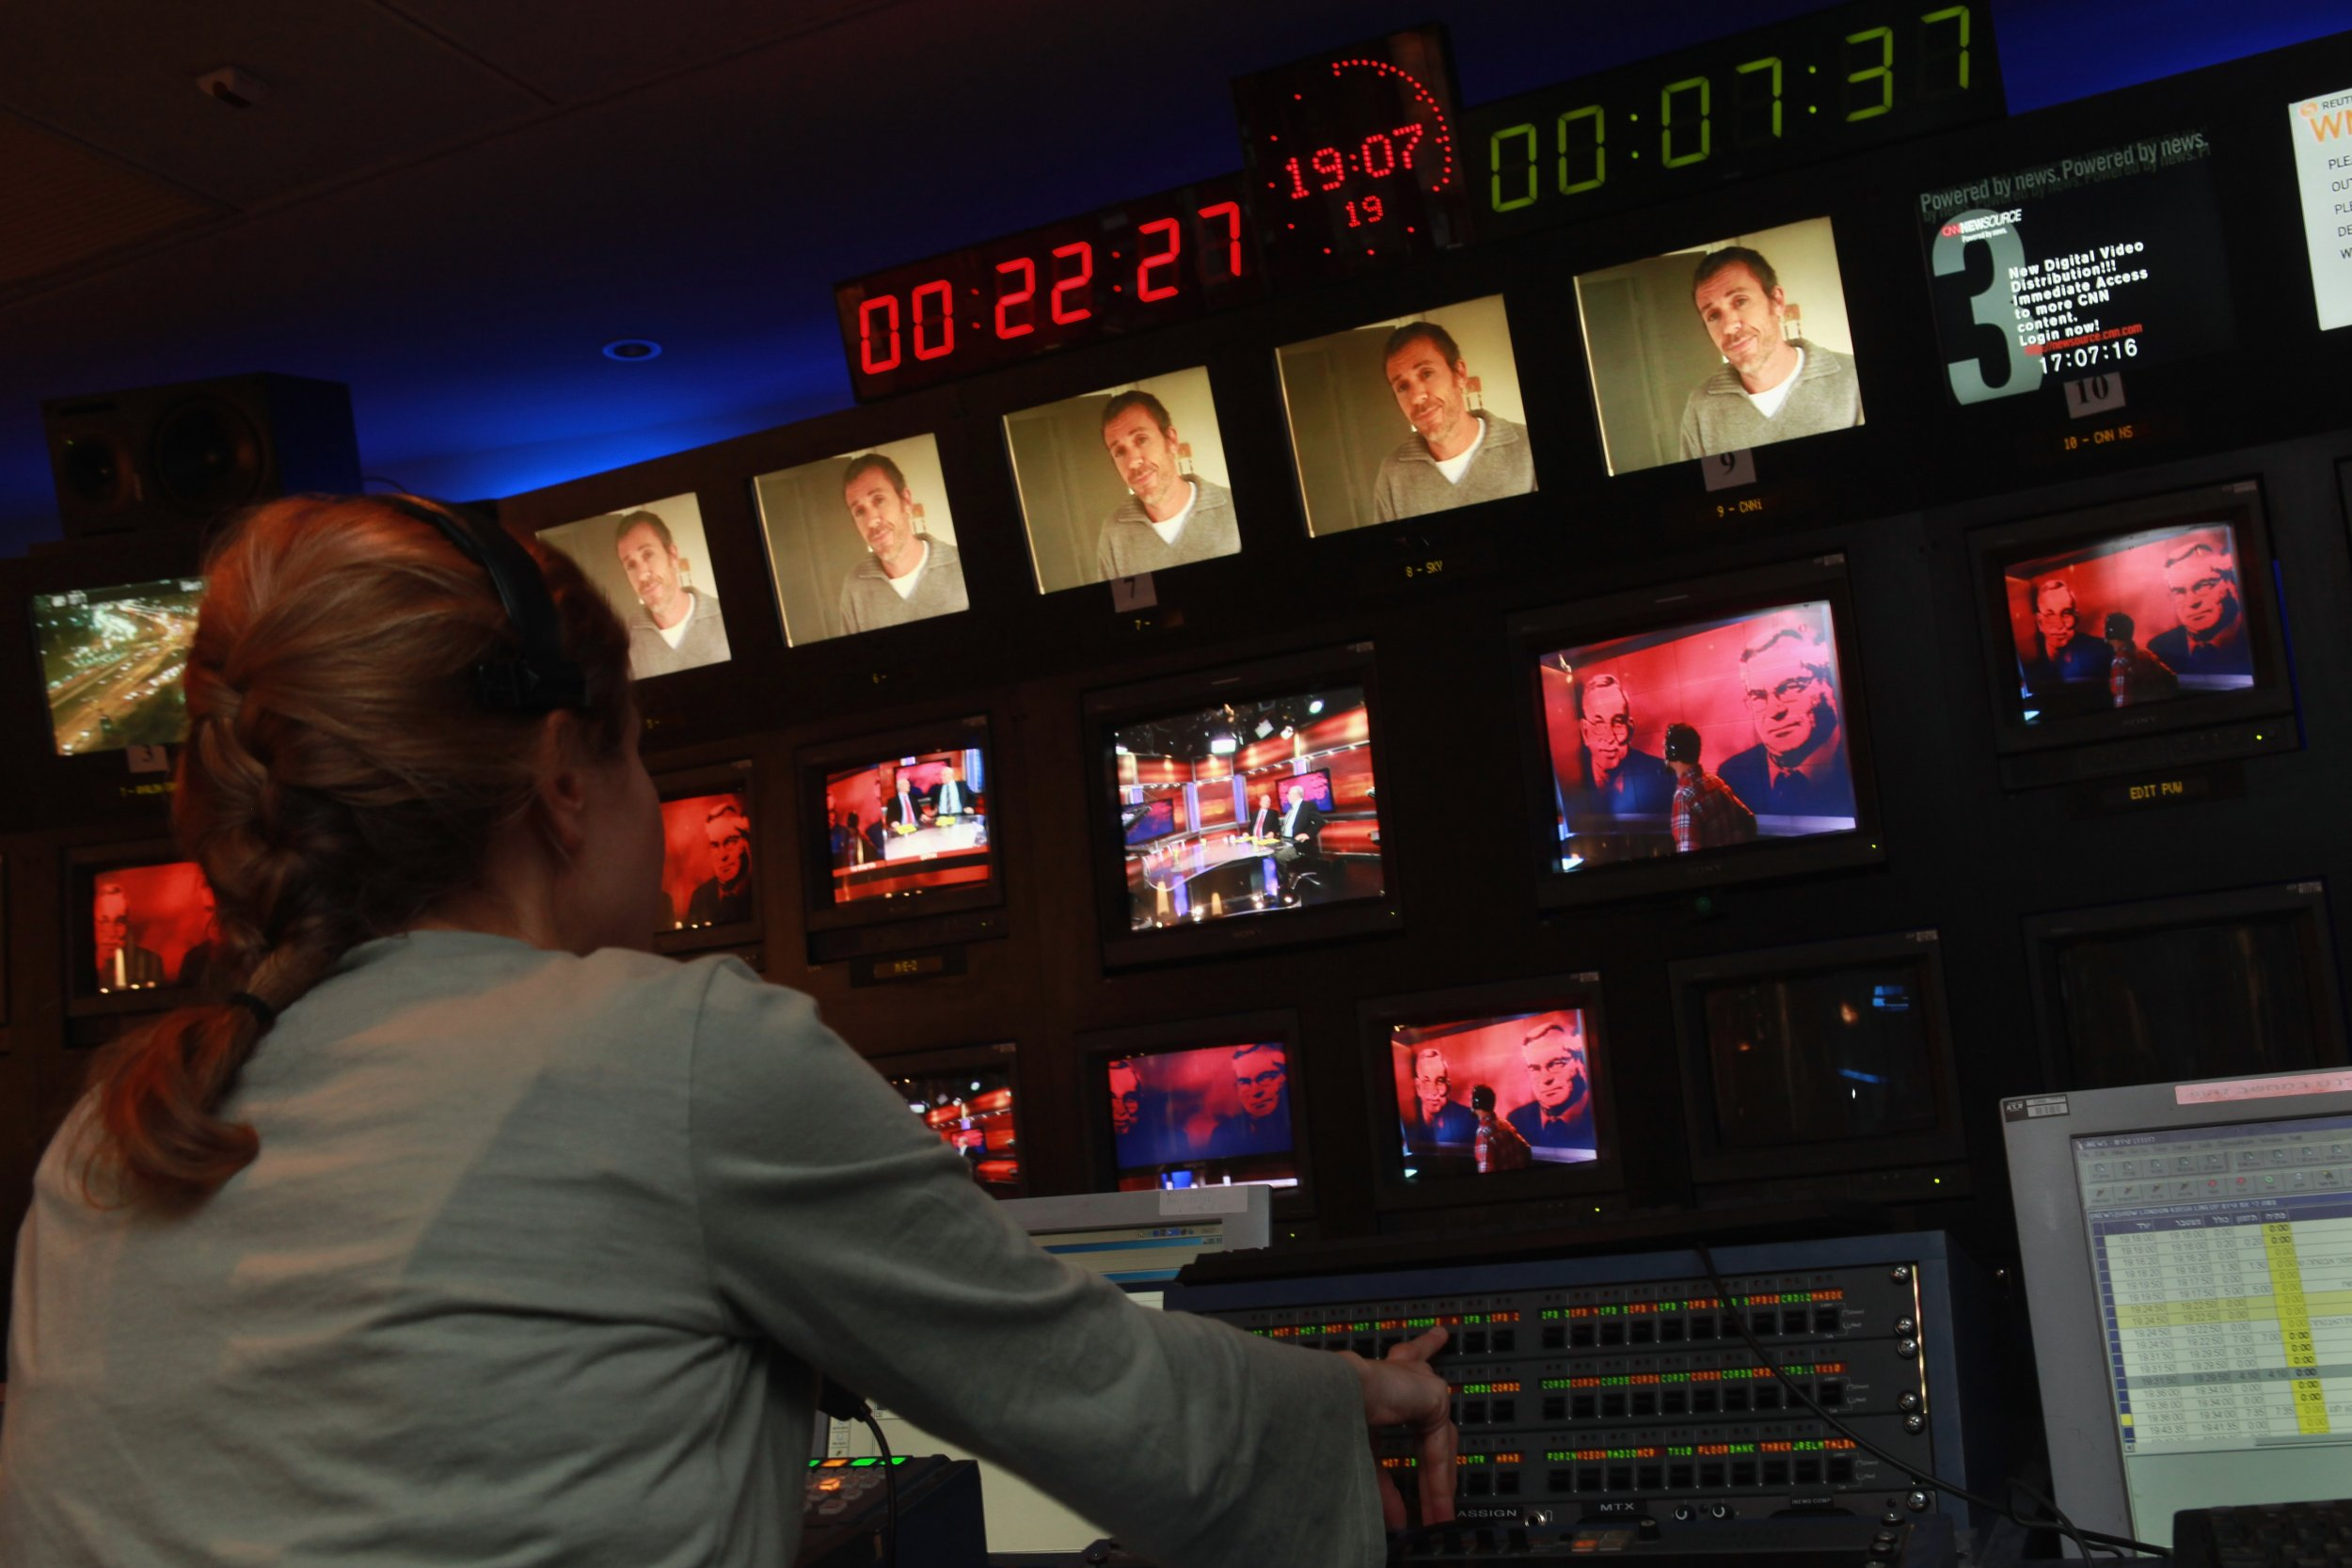 Channel 10 Television Station